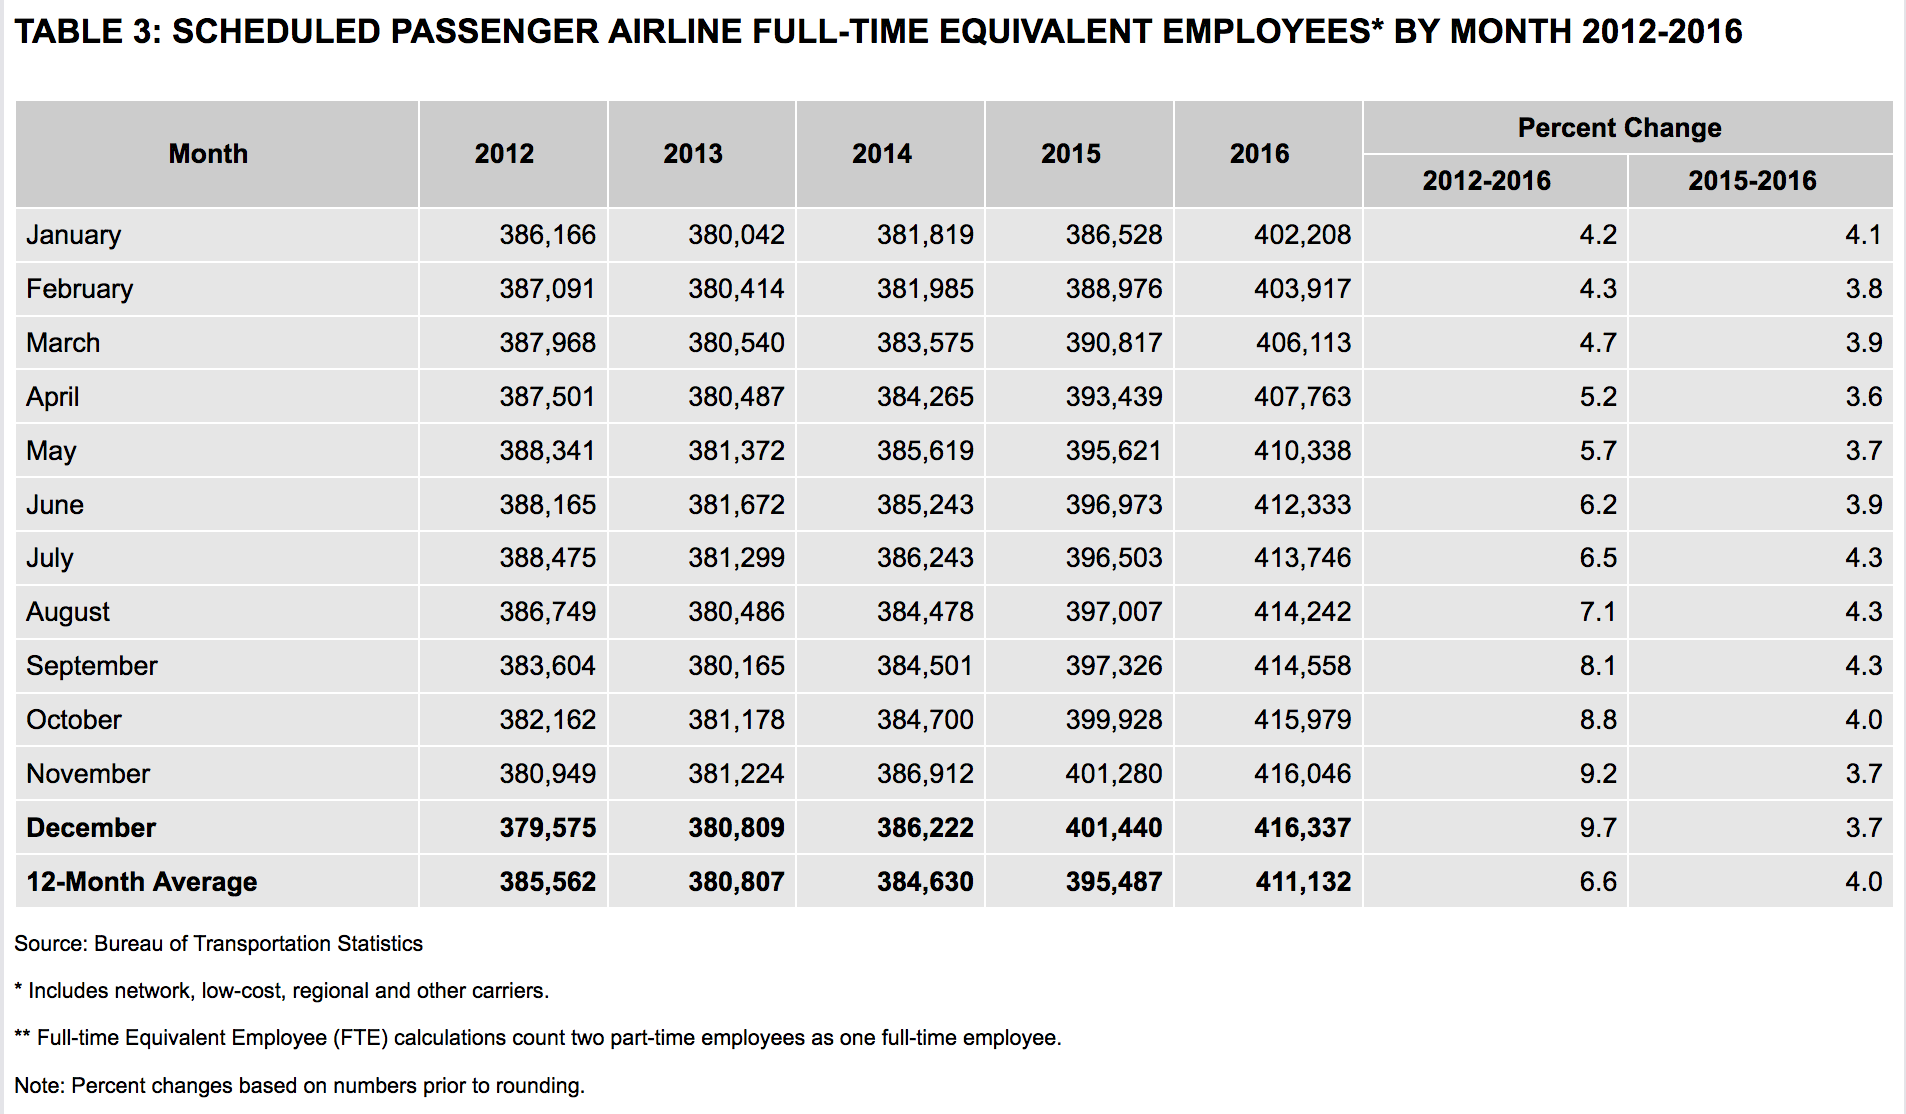 Scheduled Passenger Airline Full-Time Equivalent Employees by Month 2012-2016